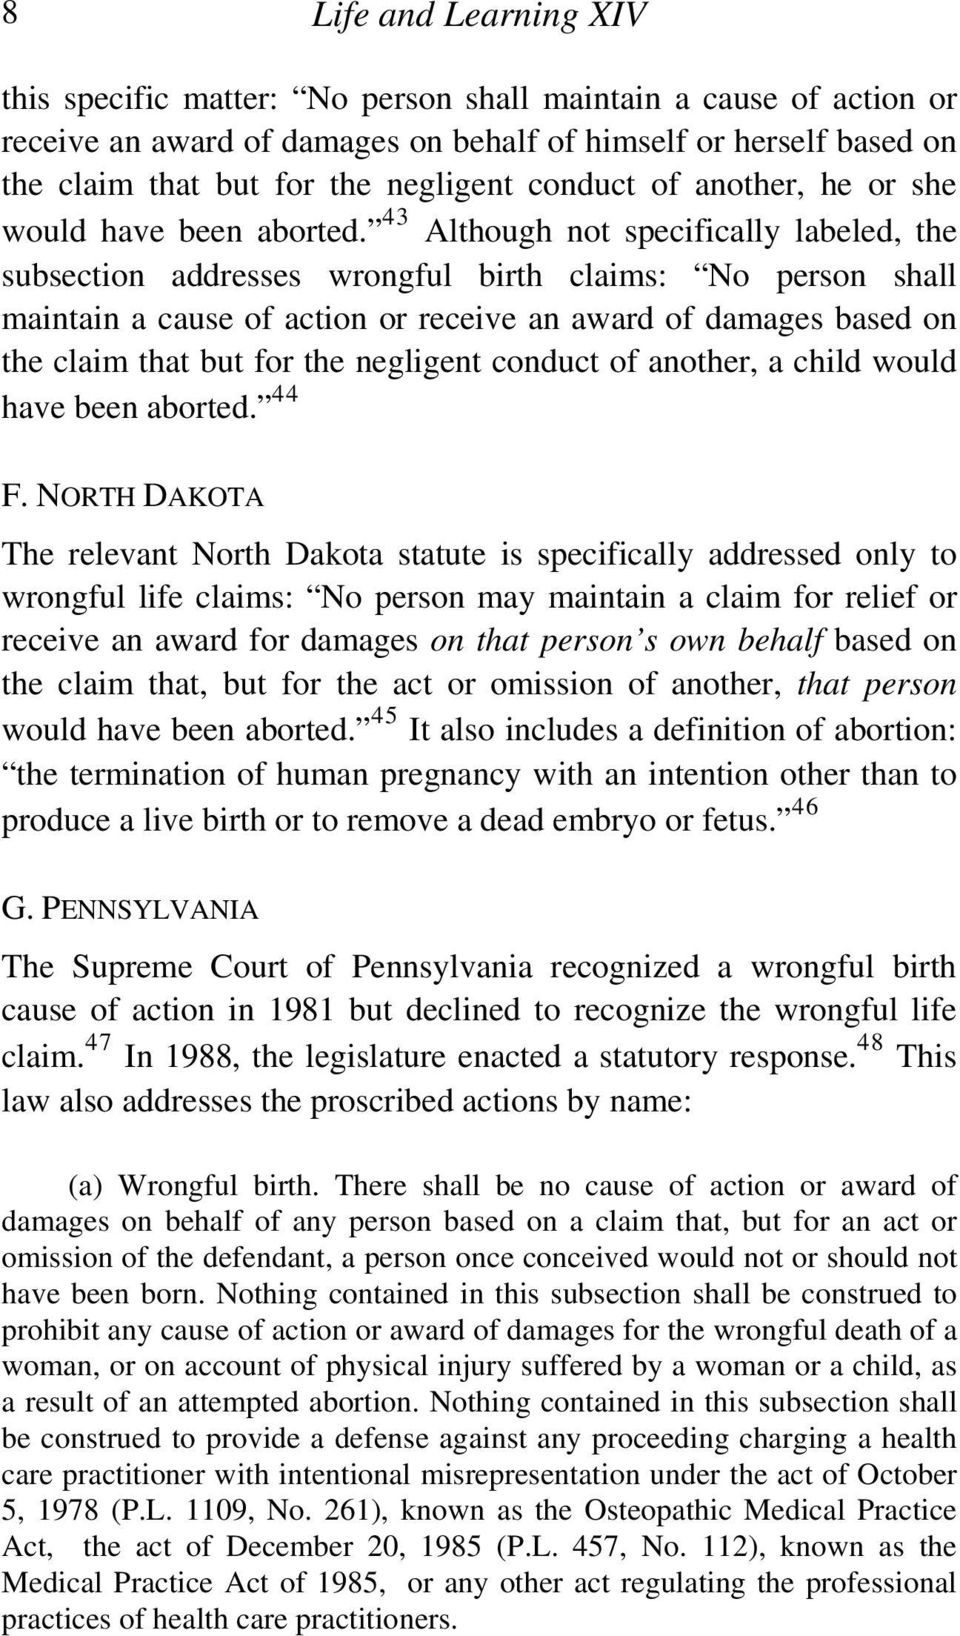 43 Although not specifically labeled, the subsection addresses wrongful birth claims: No person shall maintain a cause of action or receive an award of damages based on the claim that but for the